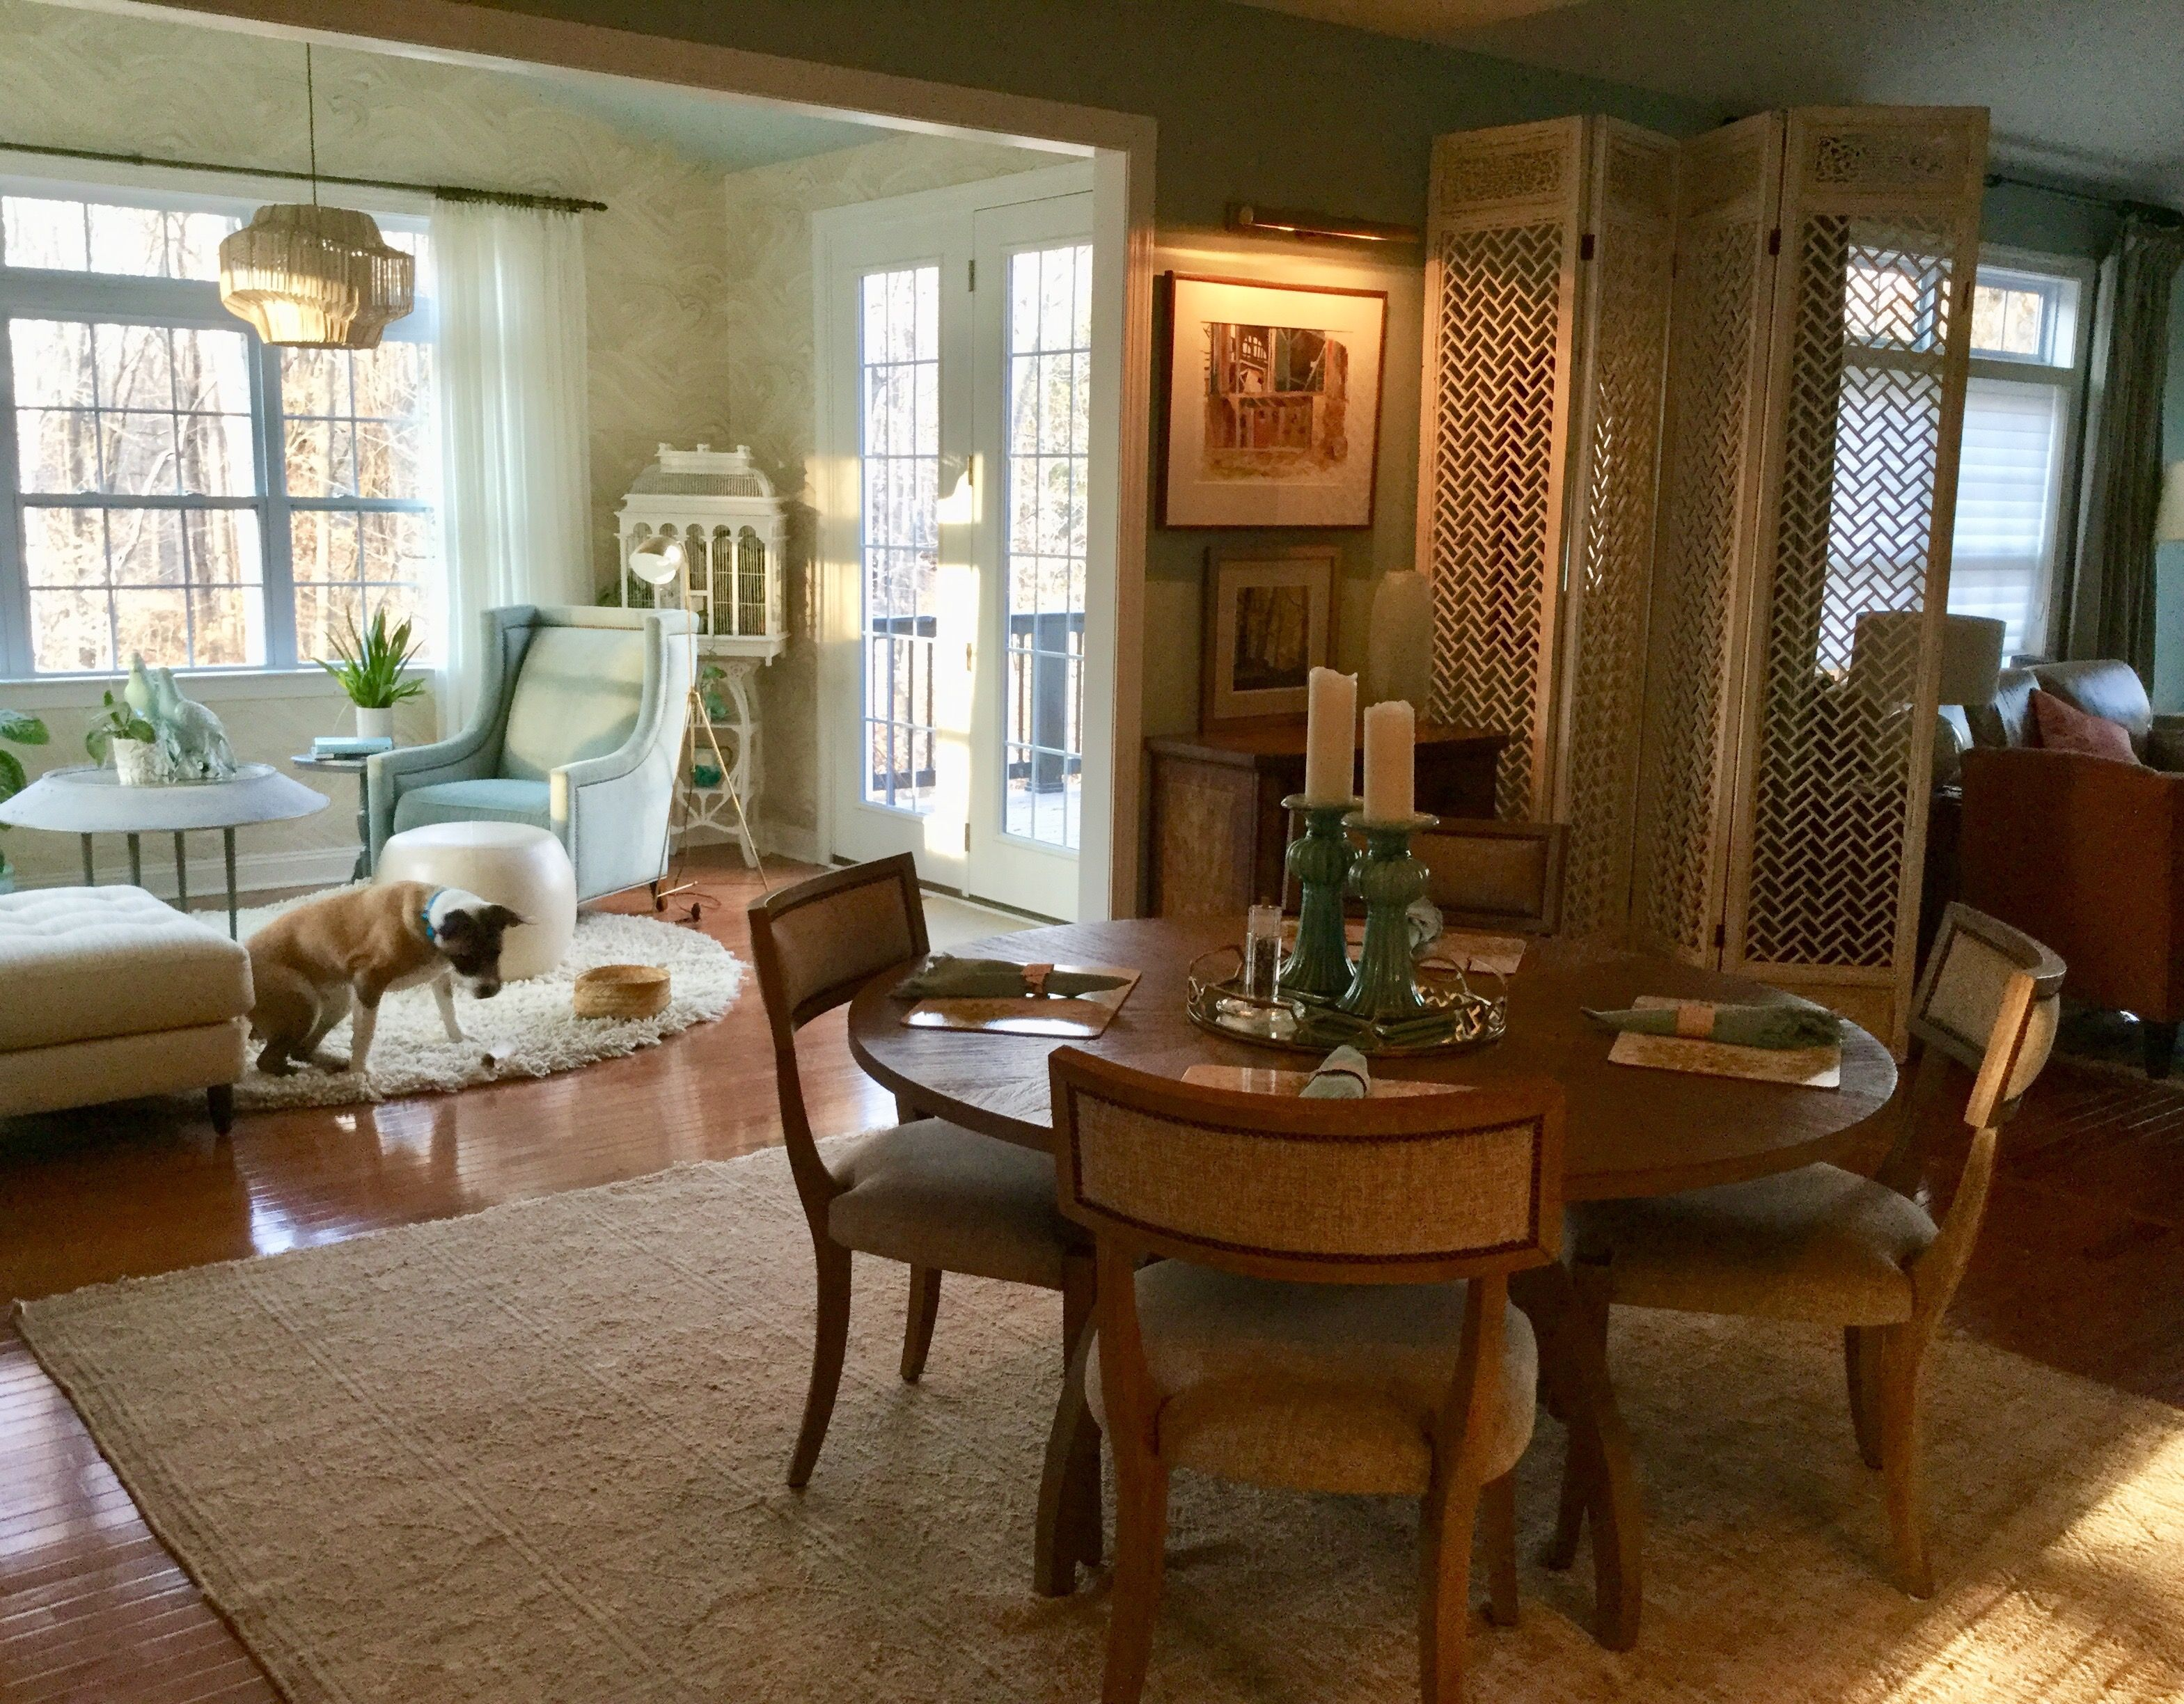 Great Room With Sunroom Attached Amazing Faux Agate Wallpaper Screen To Offer Dimension Updated Wing Chair Roun Interior Design Room Design Round Shag Rug